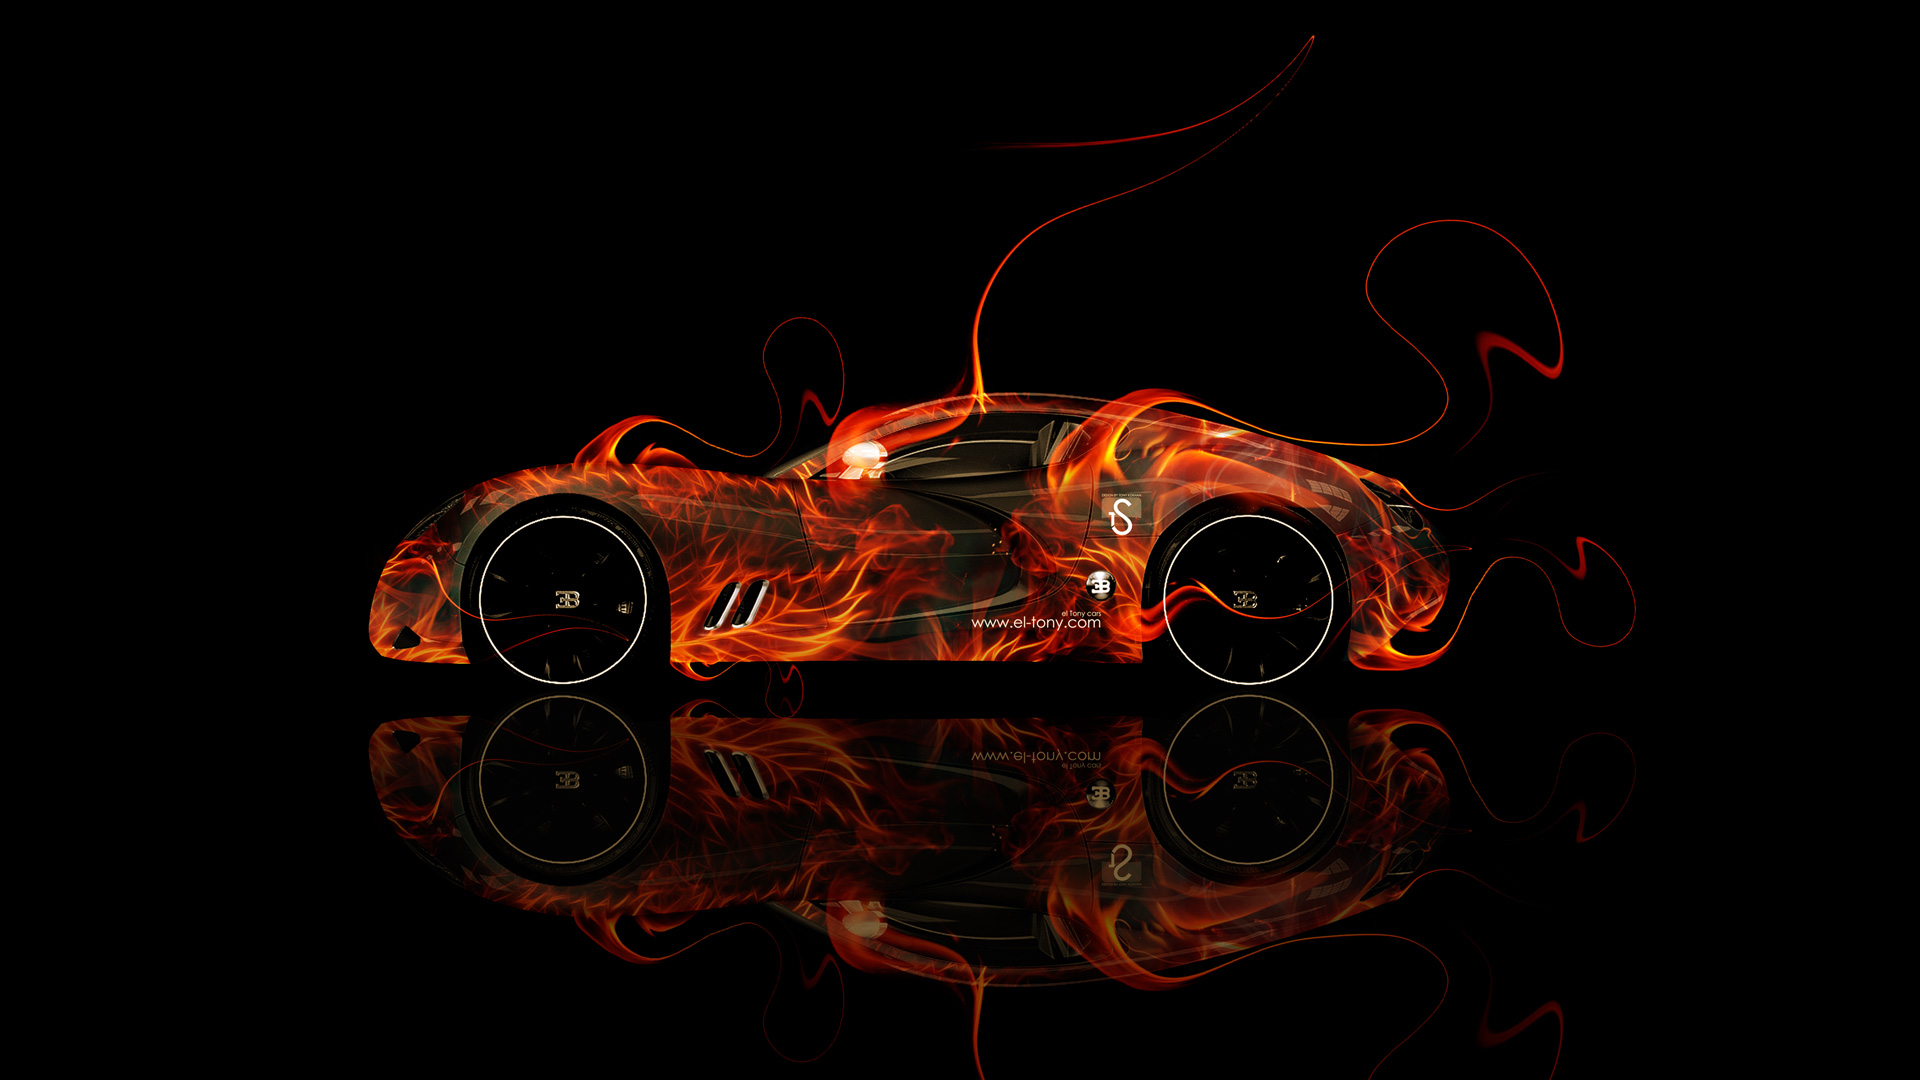 Charmant Bugatti Gangloff Fire Abstract Car 2014 HD Wallpapers